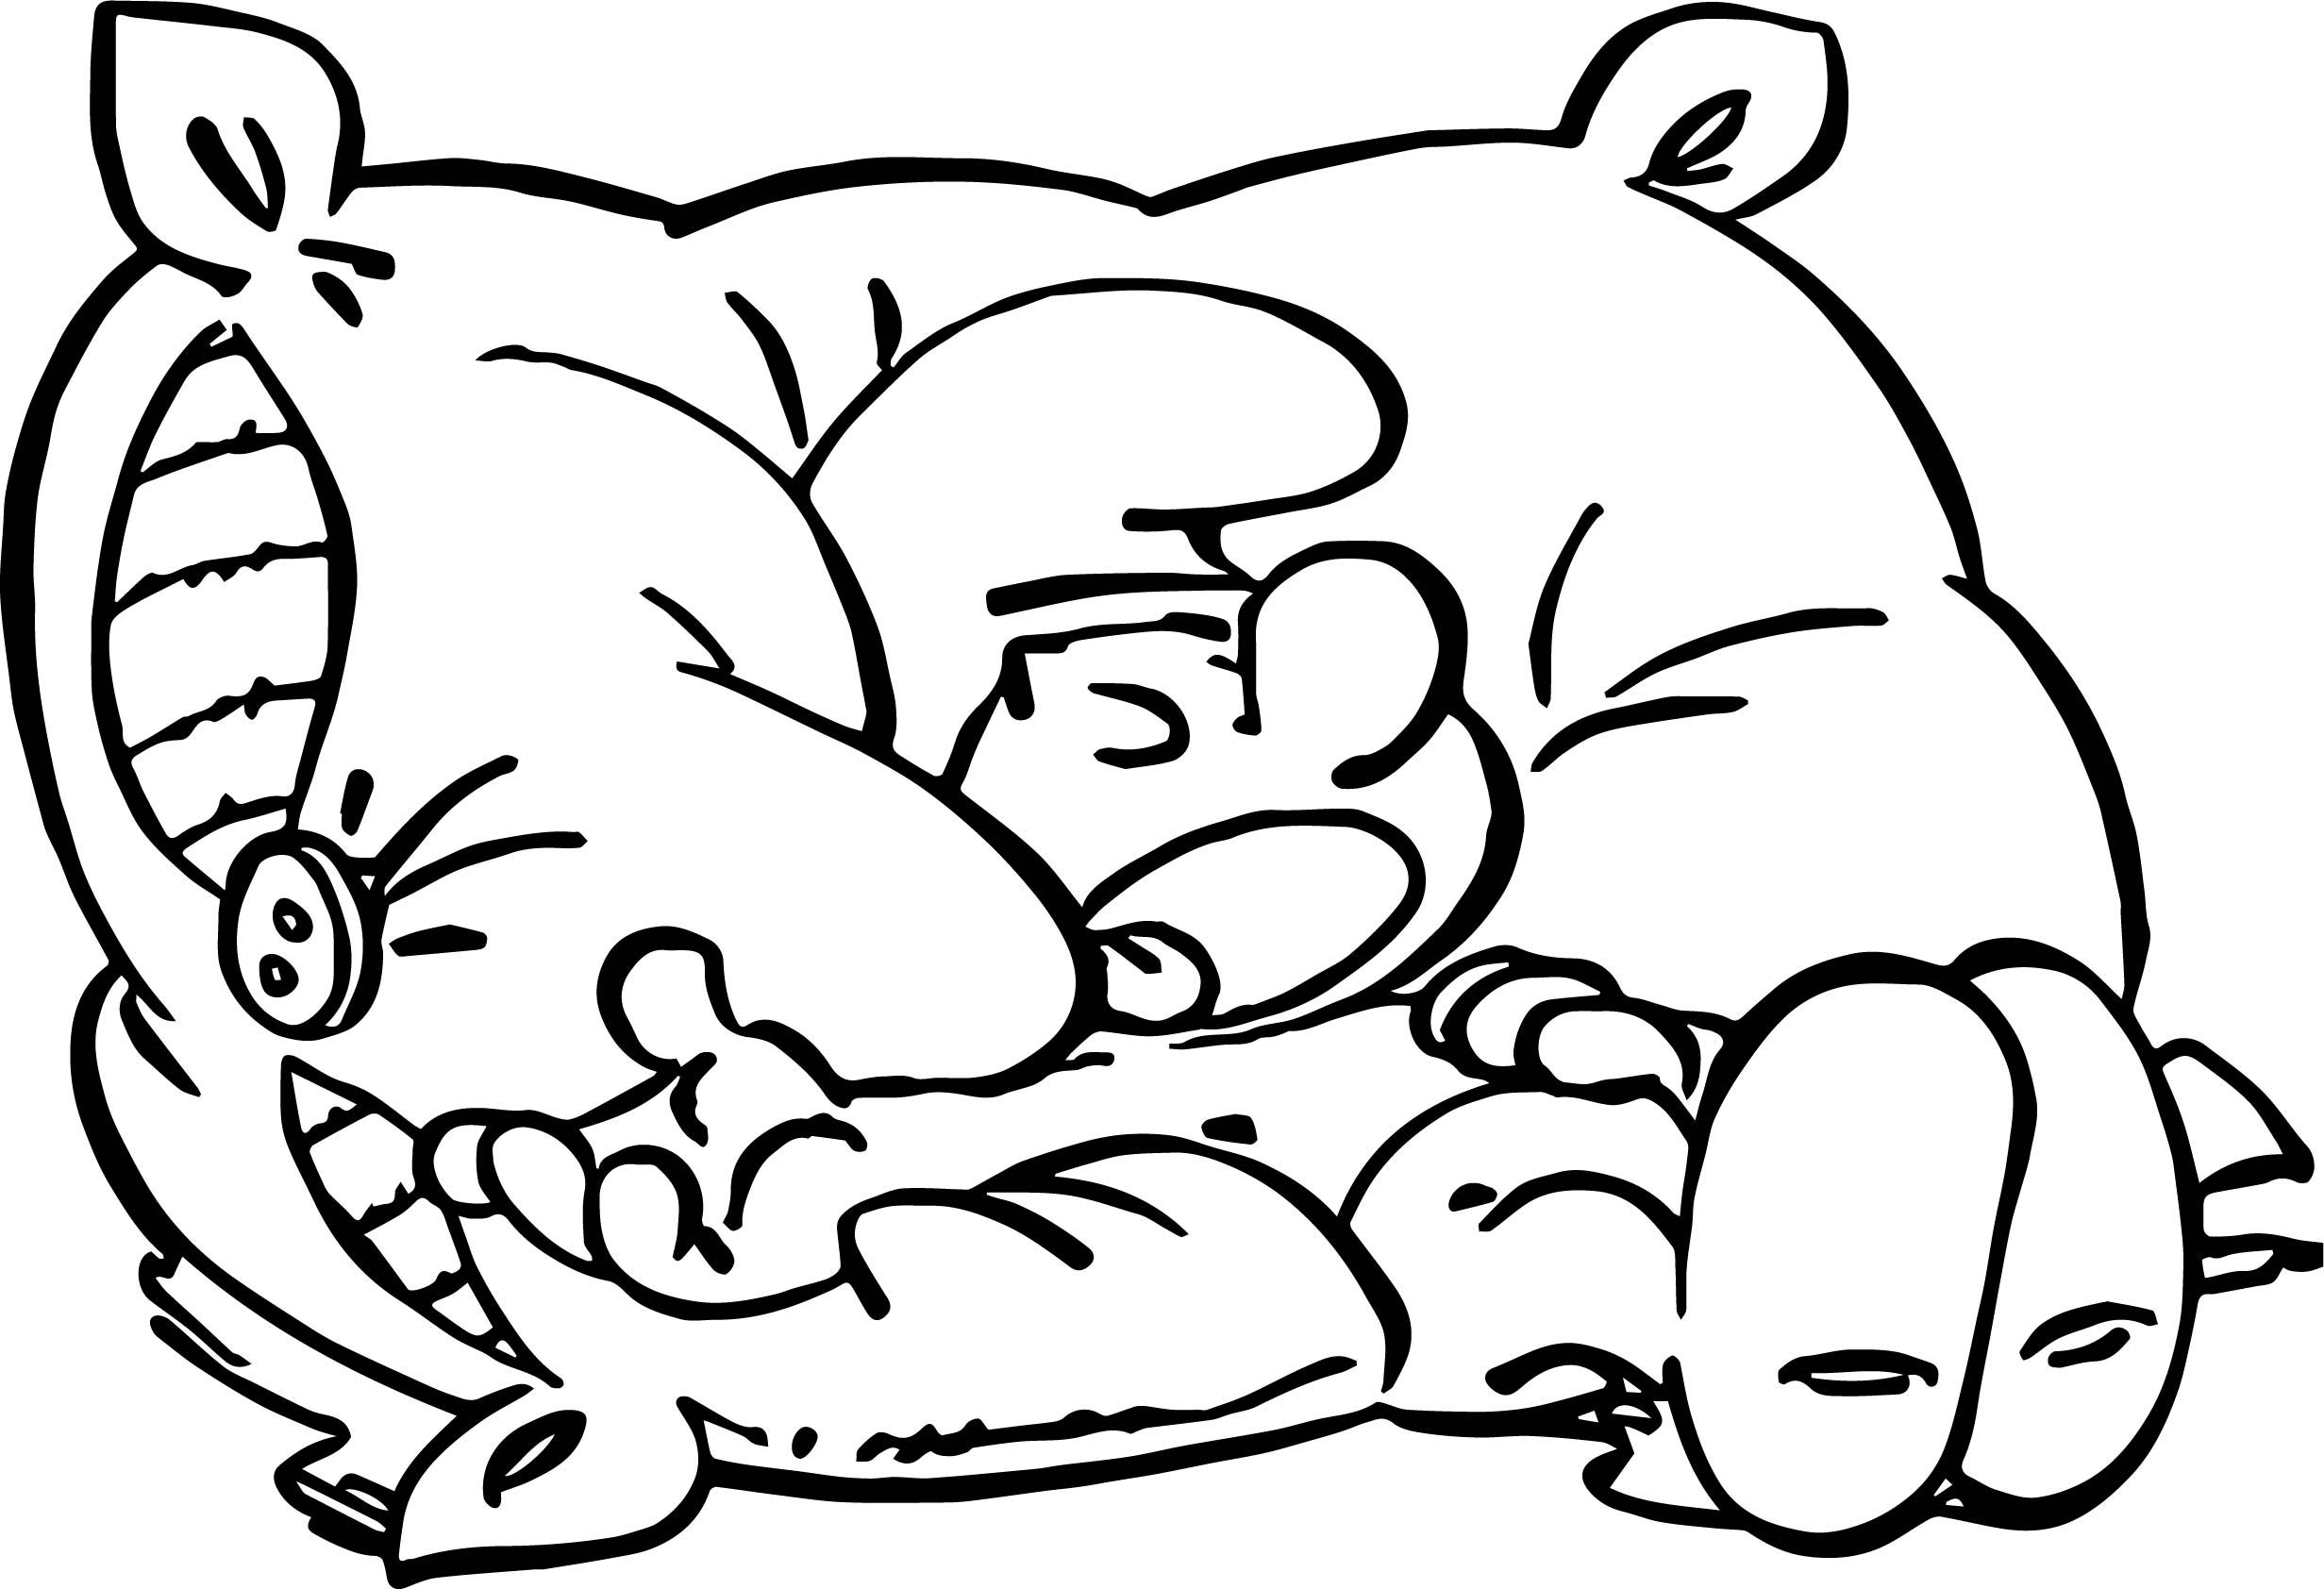 Cool Sleepy Smurf On Pillow Coloring Page Wecoloringpage